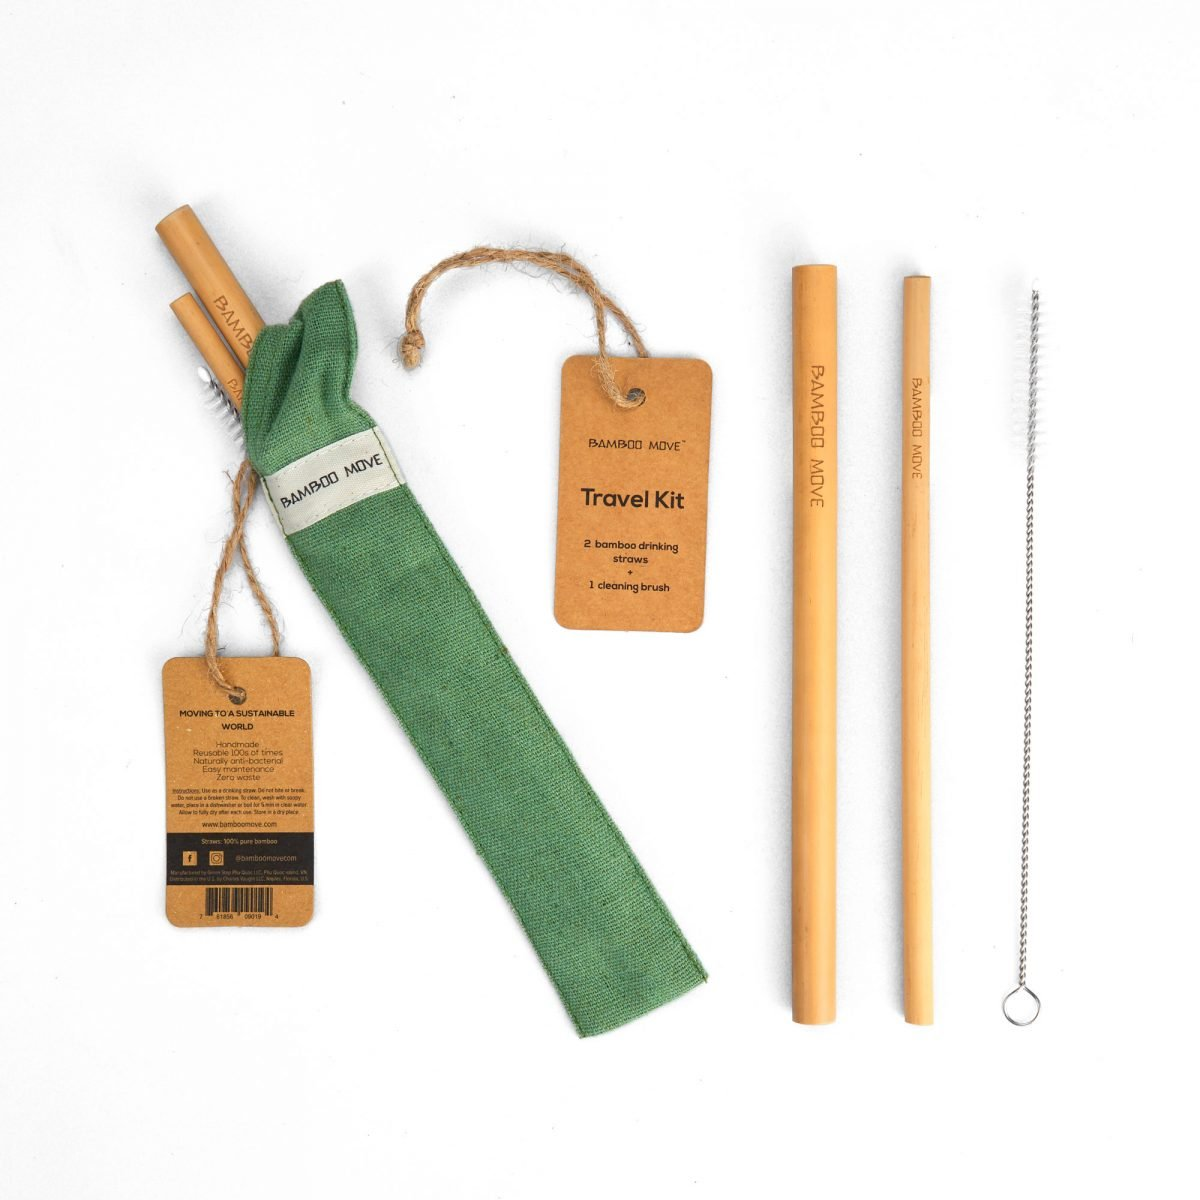 Bamboo Move Travel Kit - 2 bamboo straws in a fabric pouch